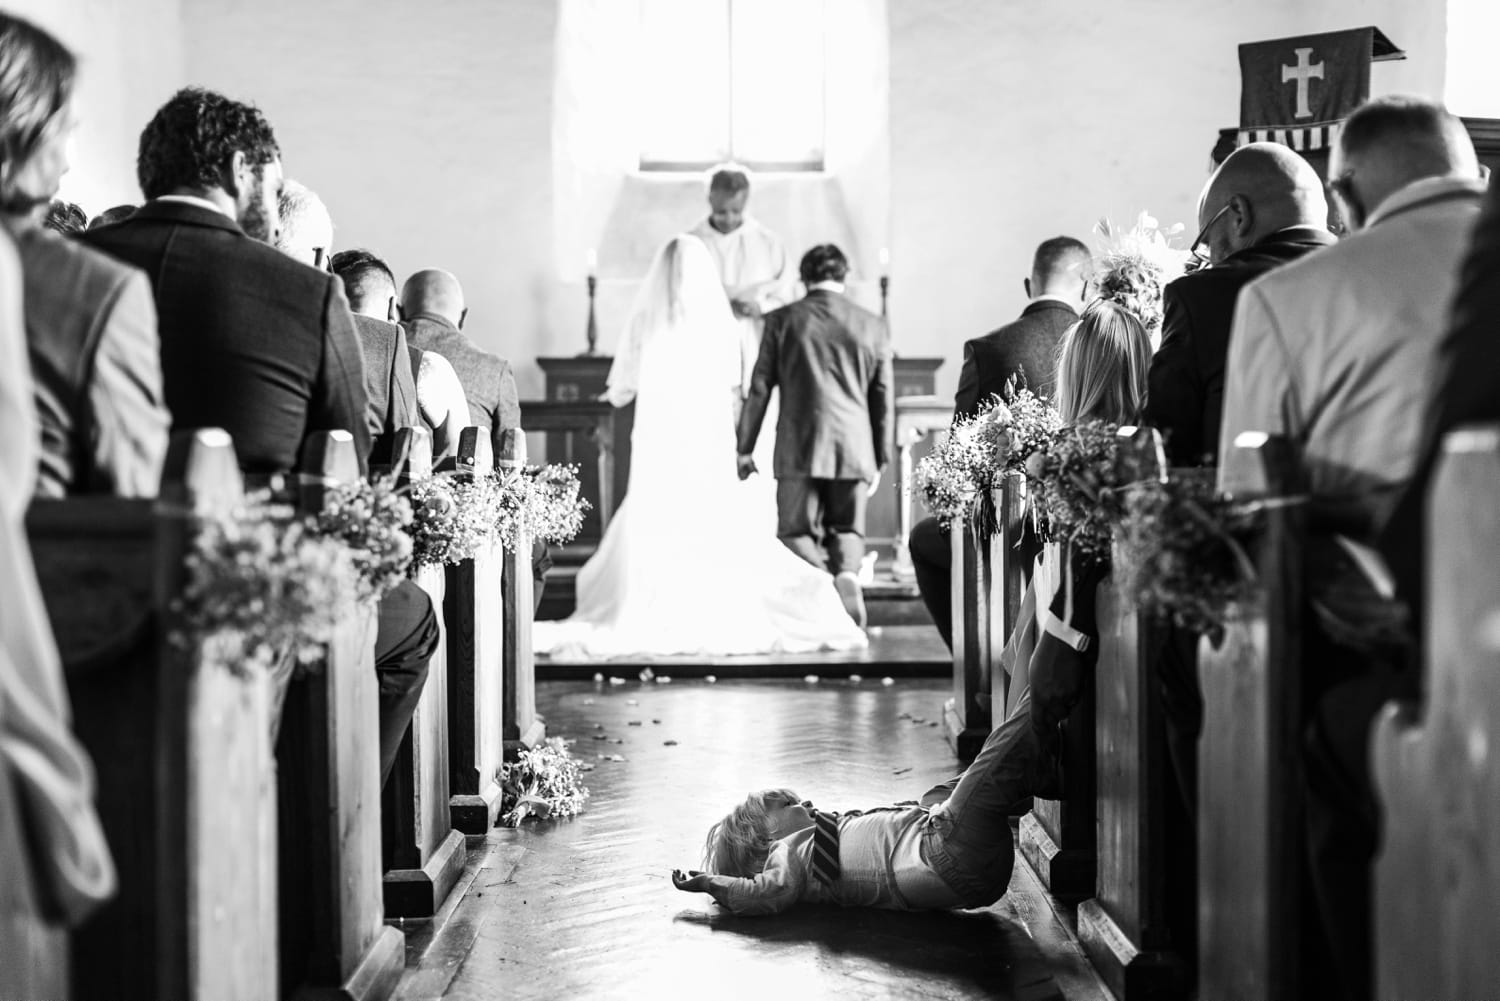 Wedding ceremony at Mwnt Church in Ceredigion, Wales